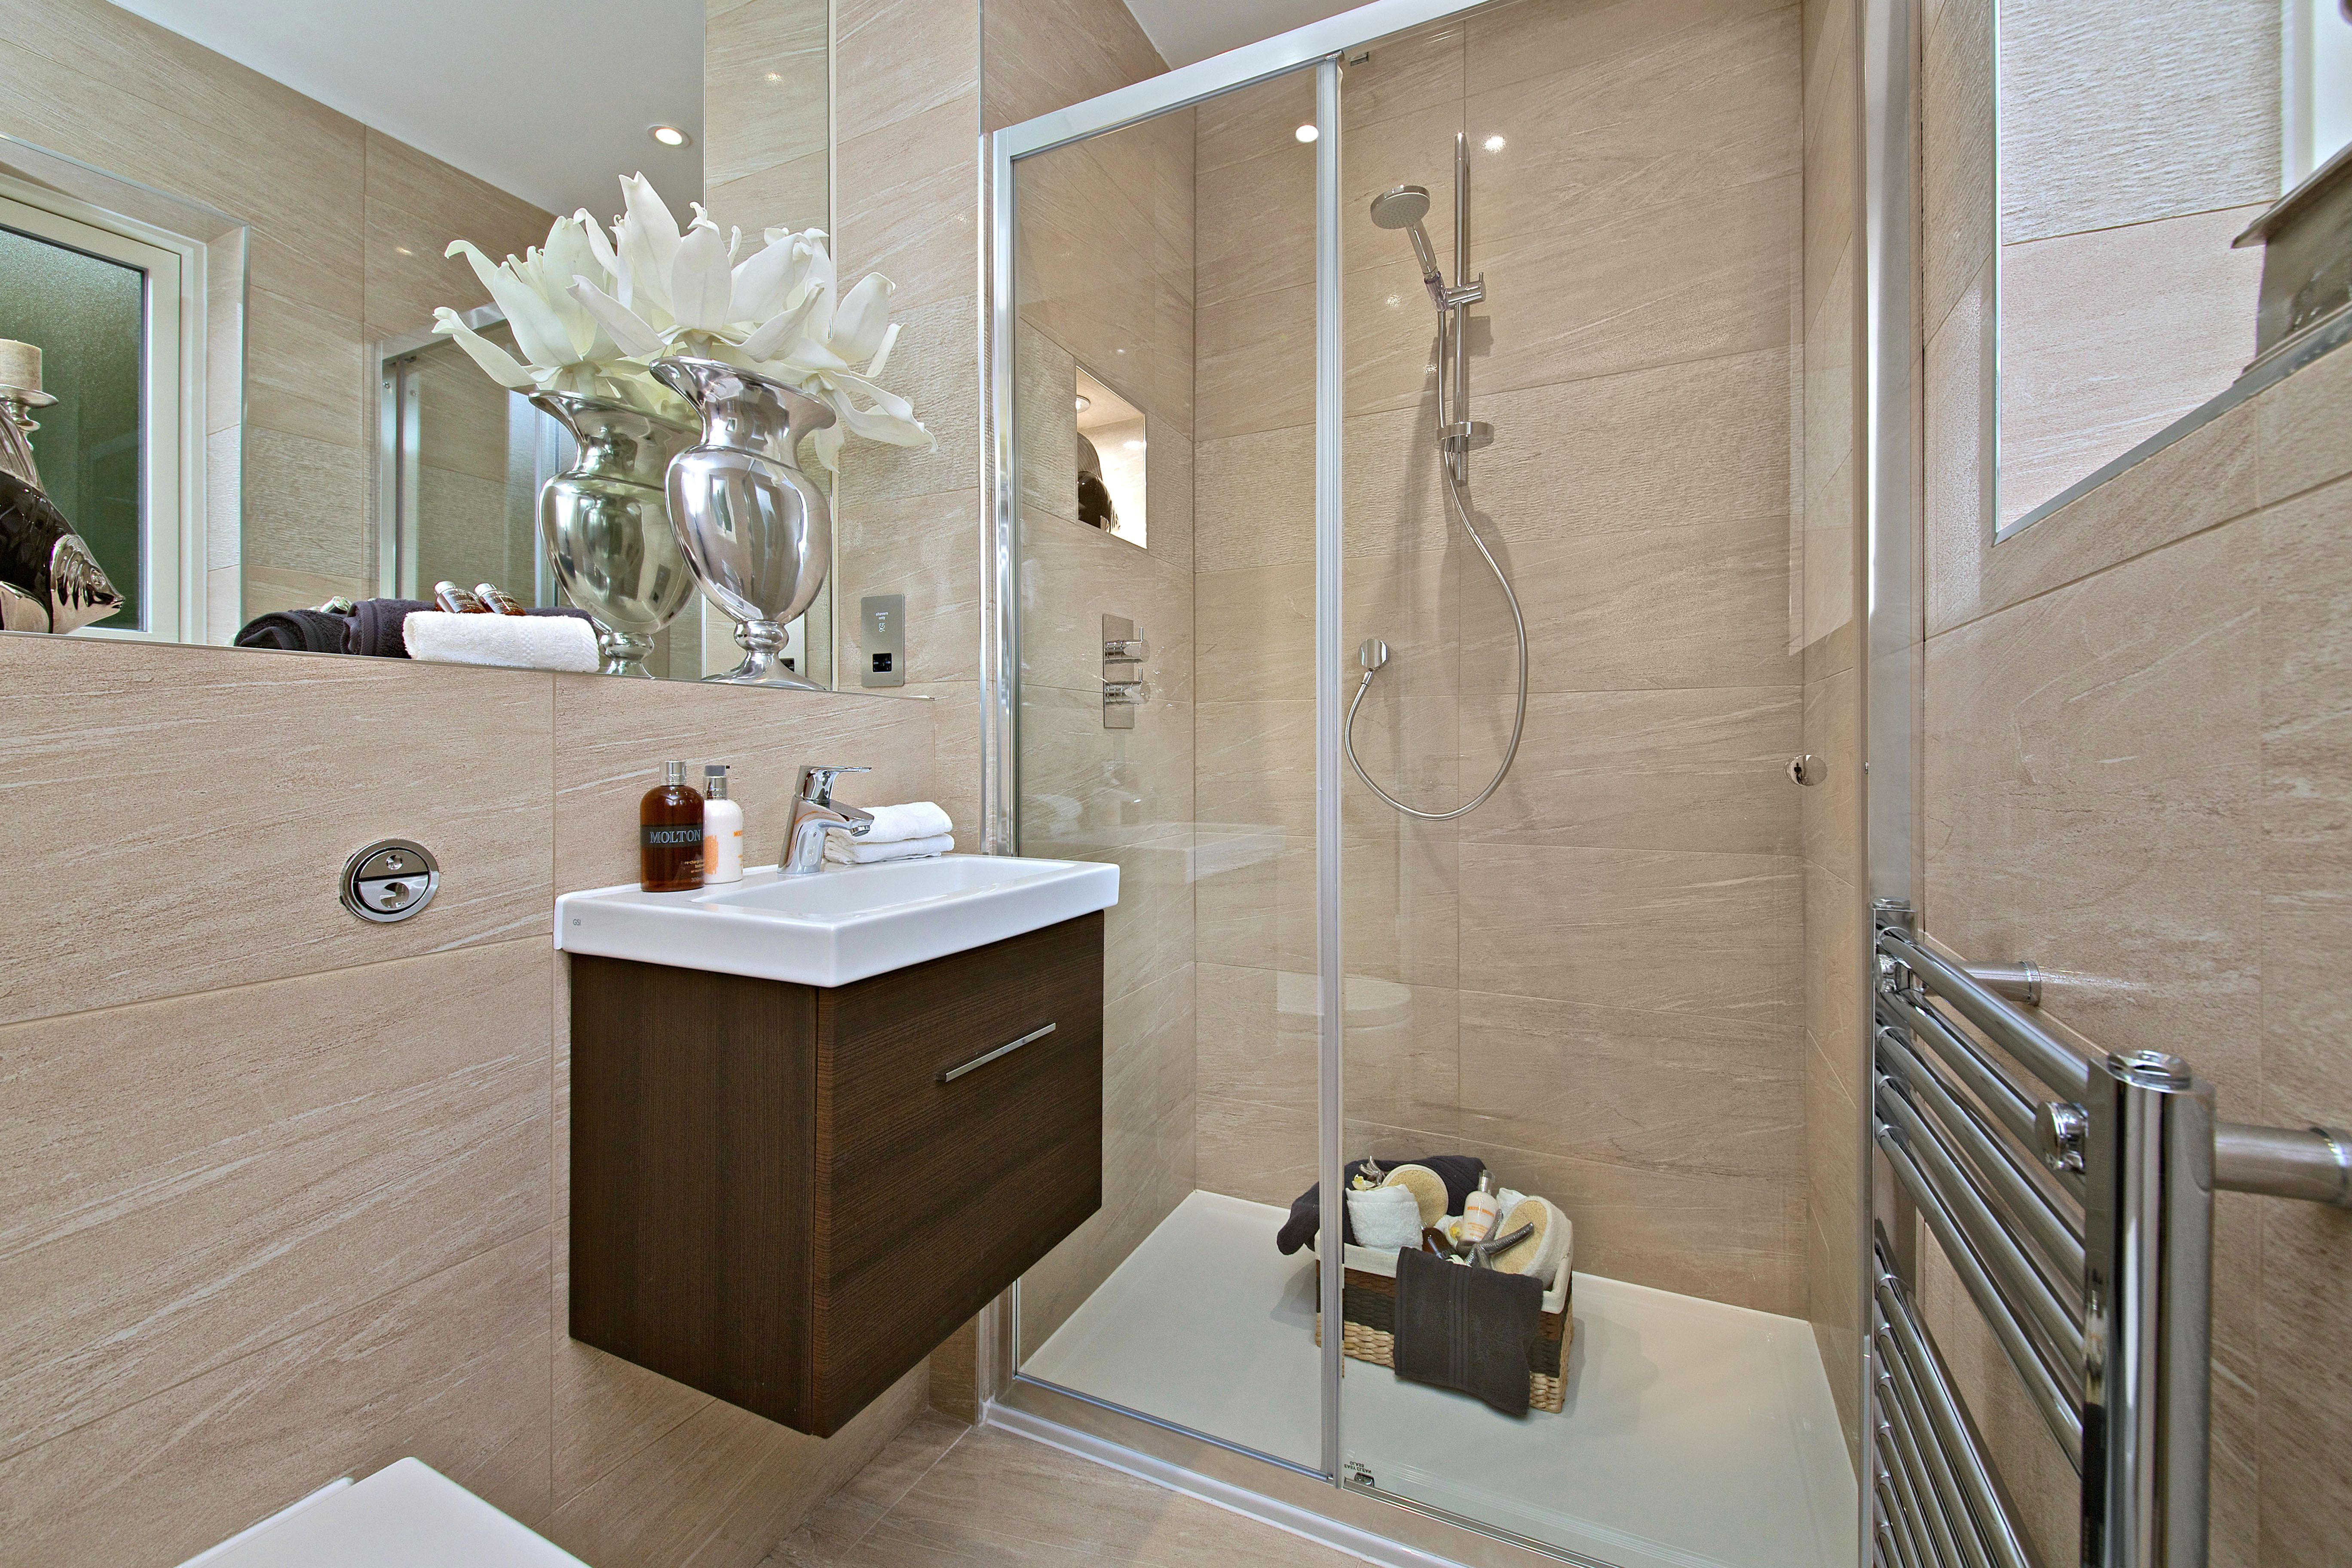 Ensuite Shower Room with Italian Porcelain Tiles with Textured